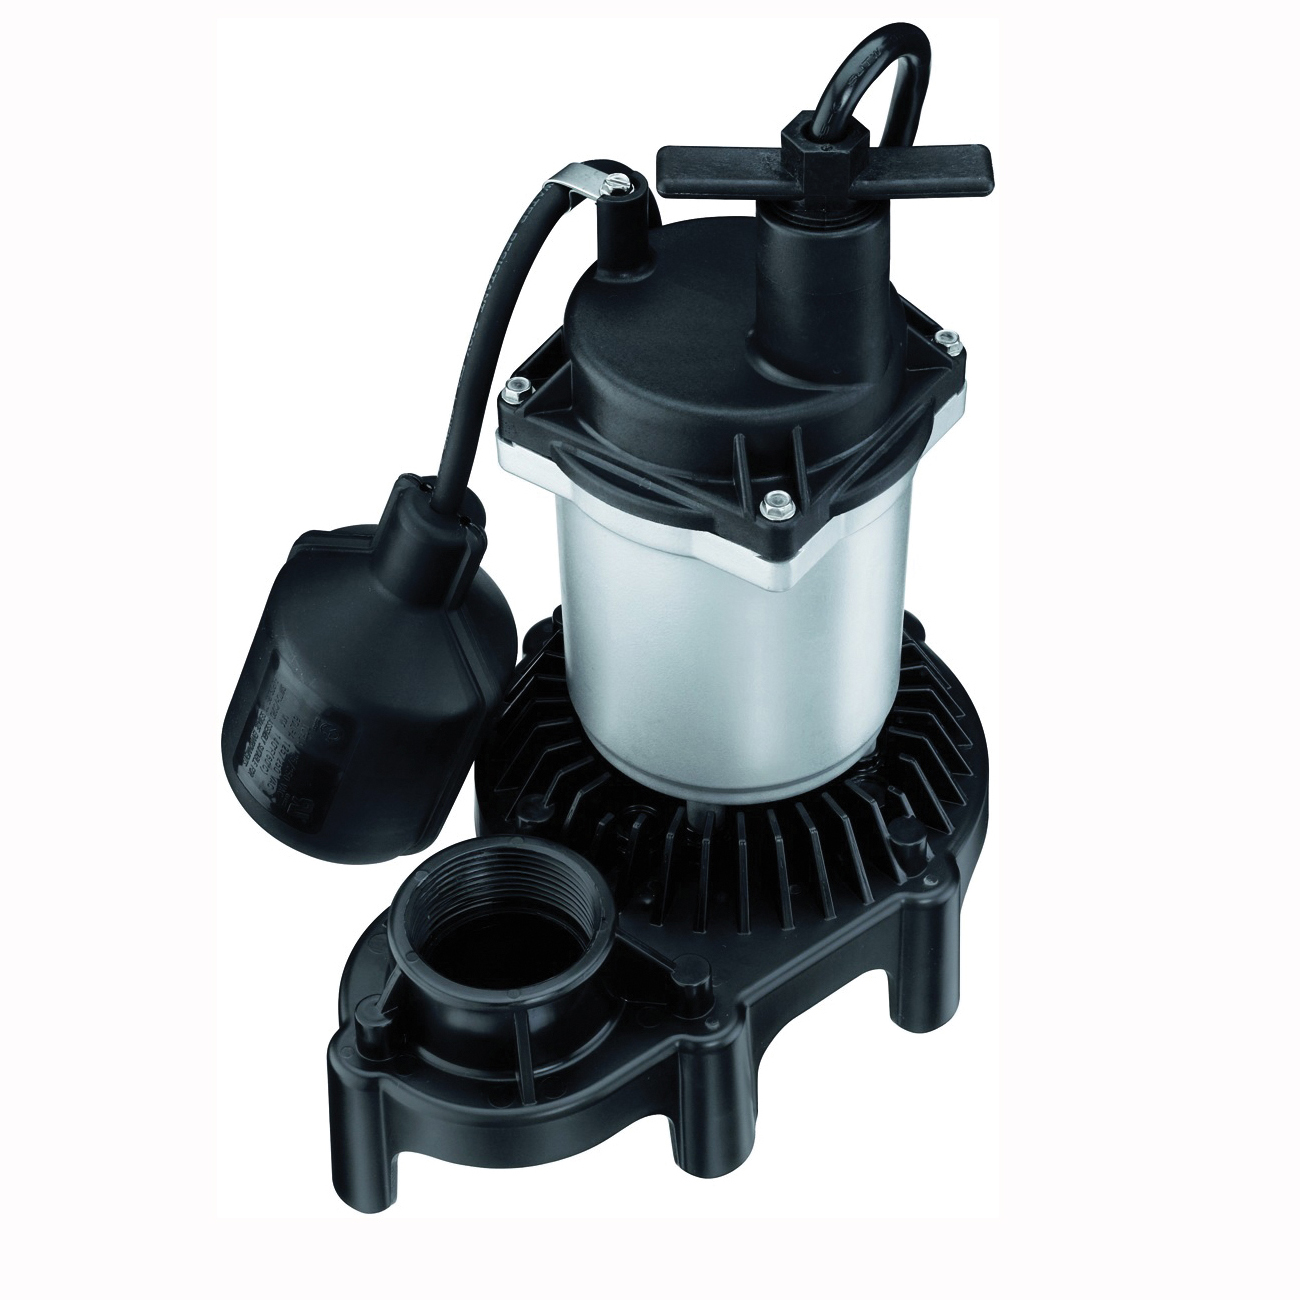 Picture of Flotec FPZS25T Sump Pump, 1-Phase, 3.9 A, 115 V, 0.25 hp, 1-1/2 in Outlet, 20 ft Max Head, 3200 gph